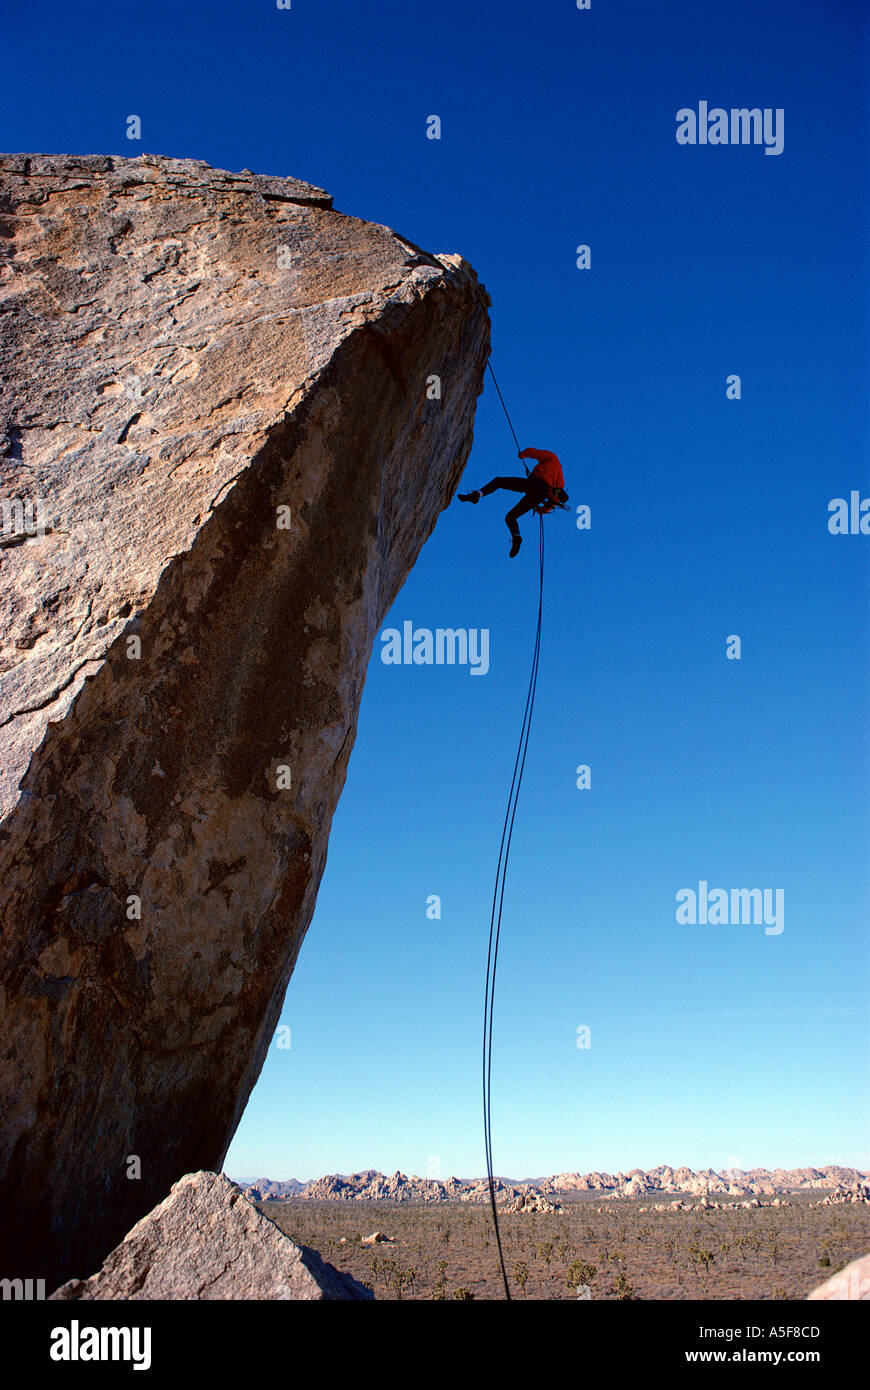 Man rappeling off of large boulder while rock climbing in Joshua Tree California - Stock Image